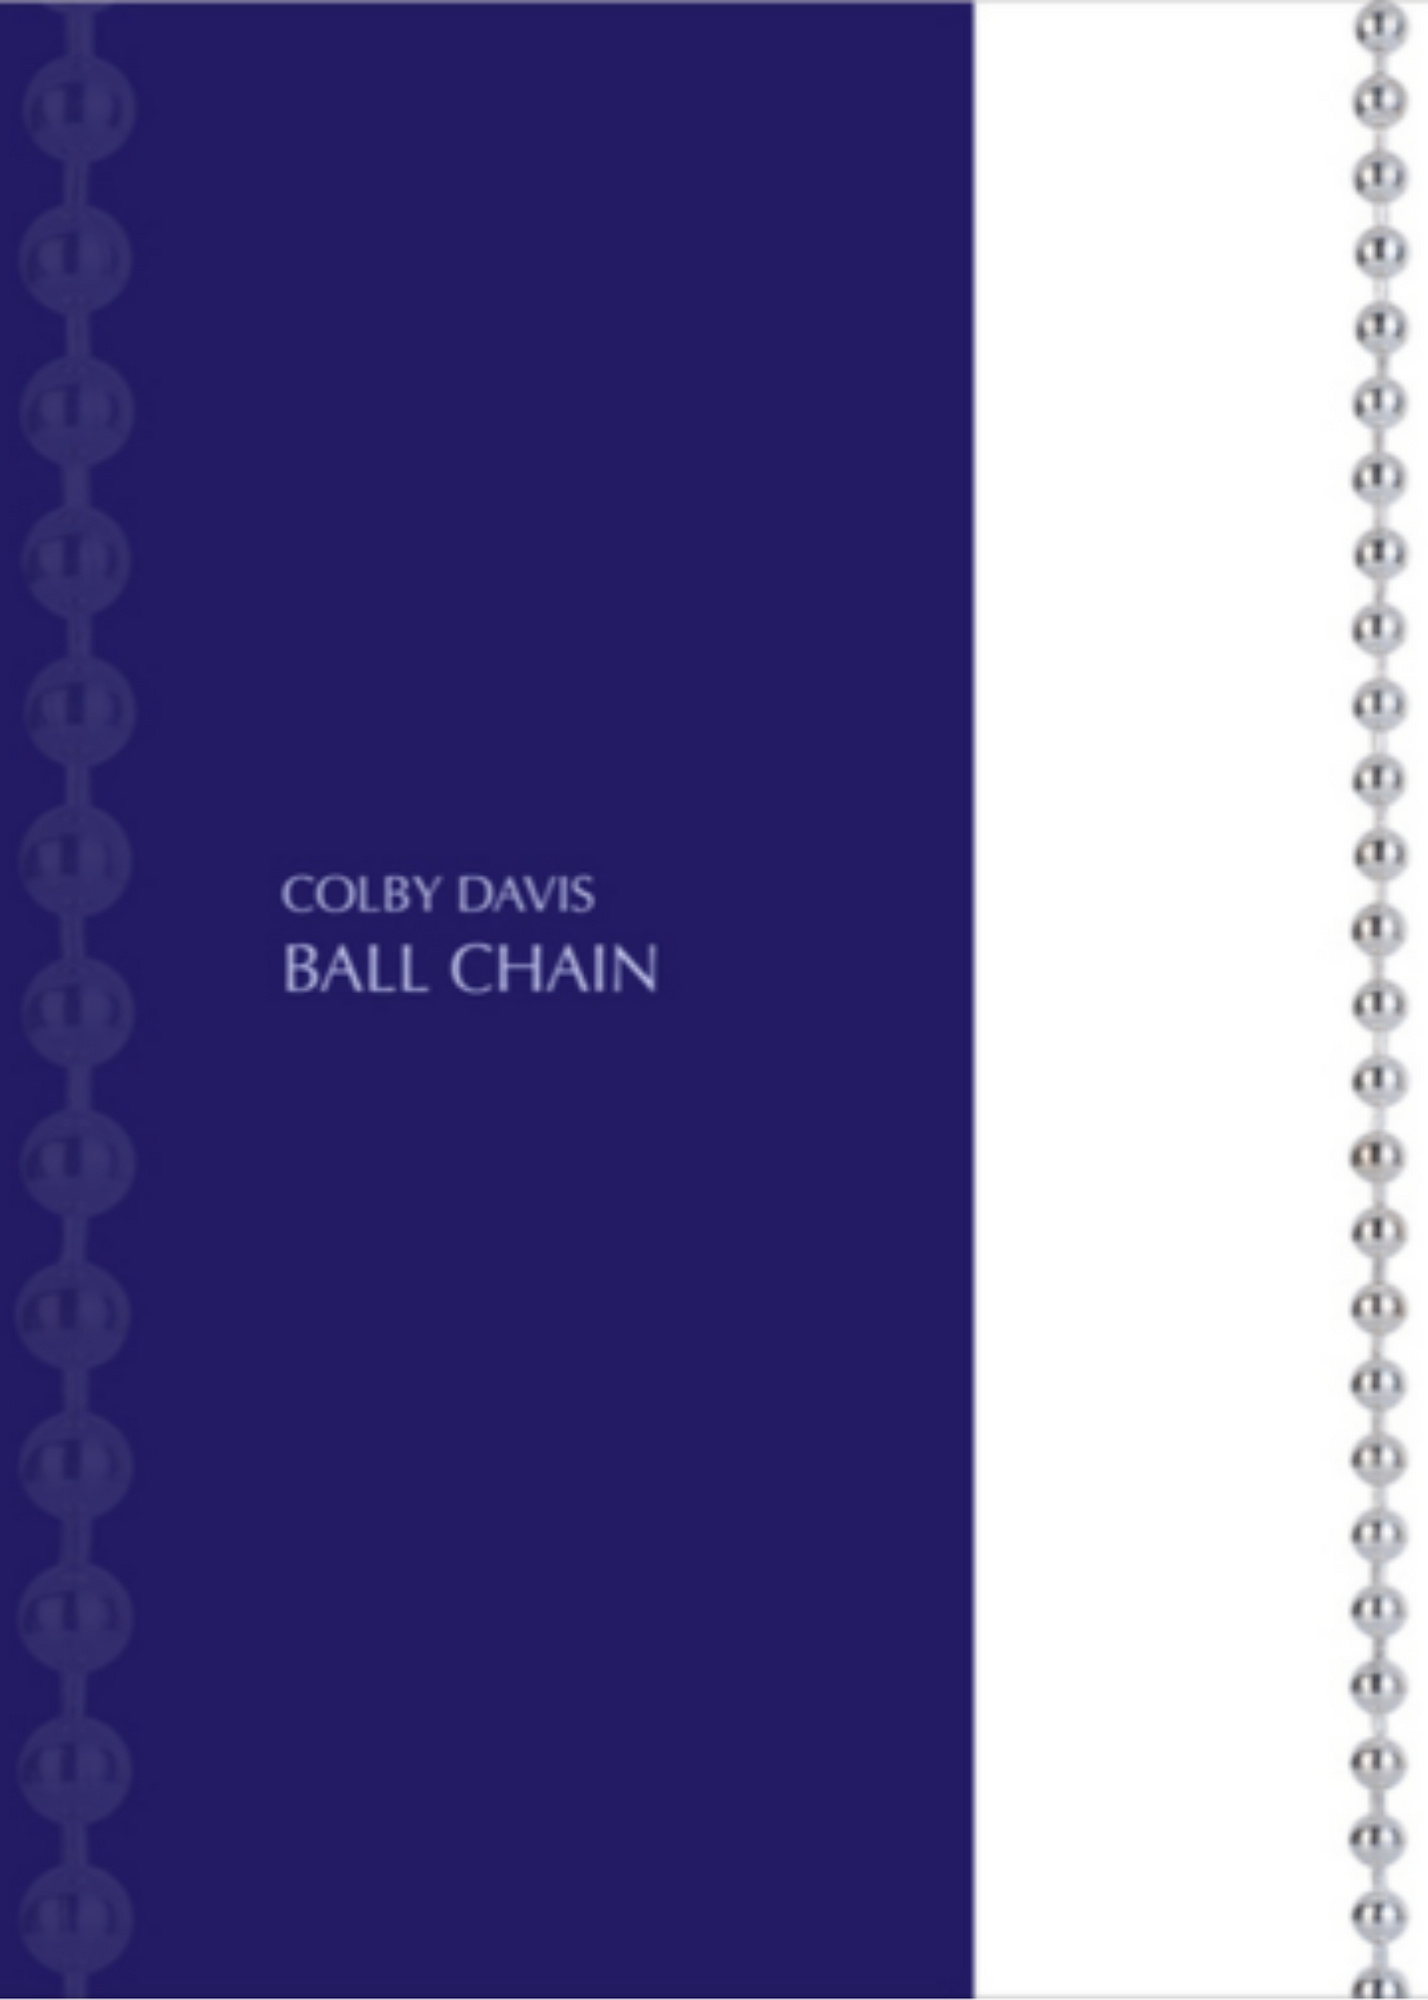 Colby Davis Chain: Ball